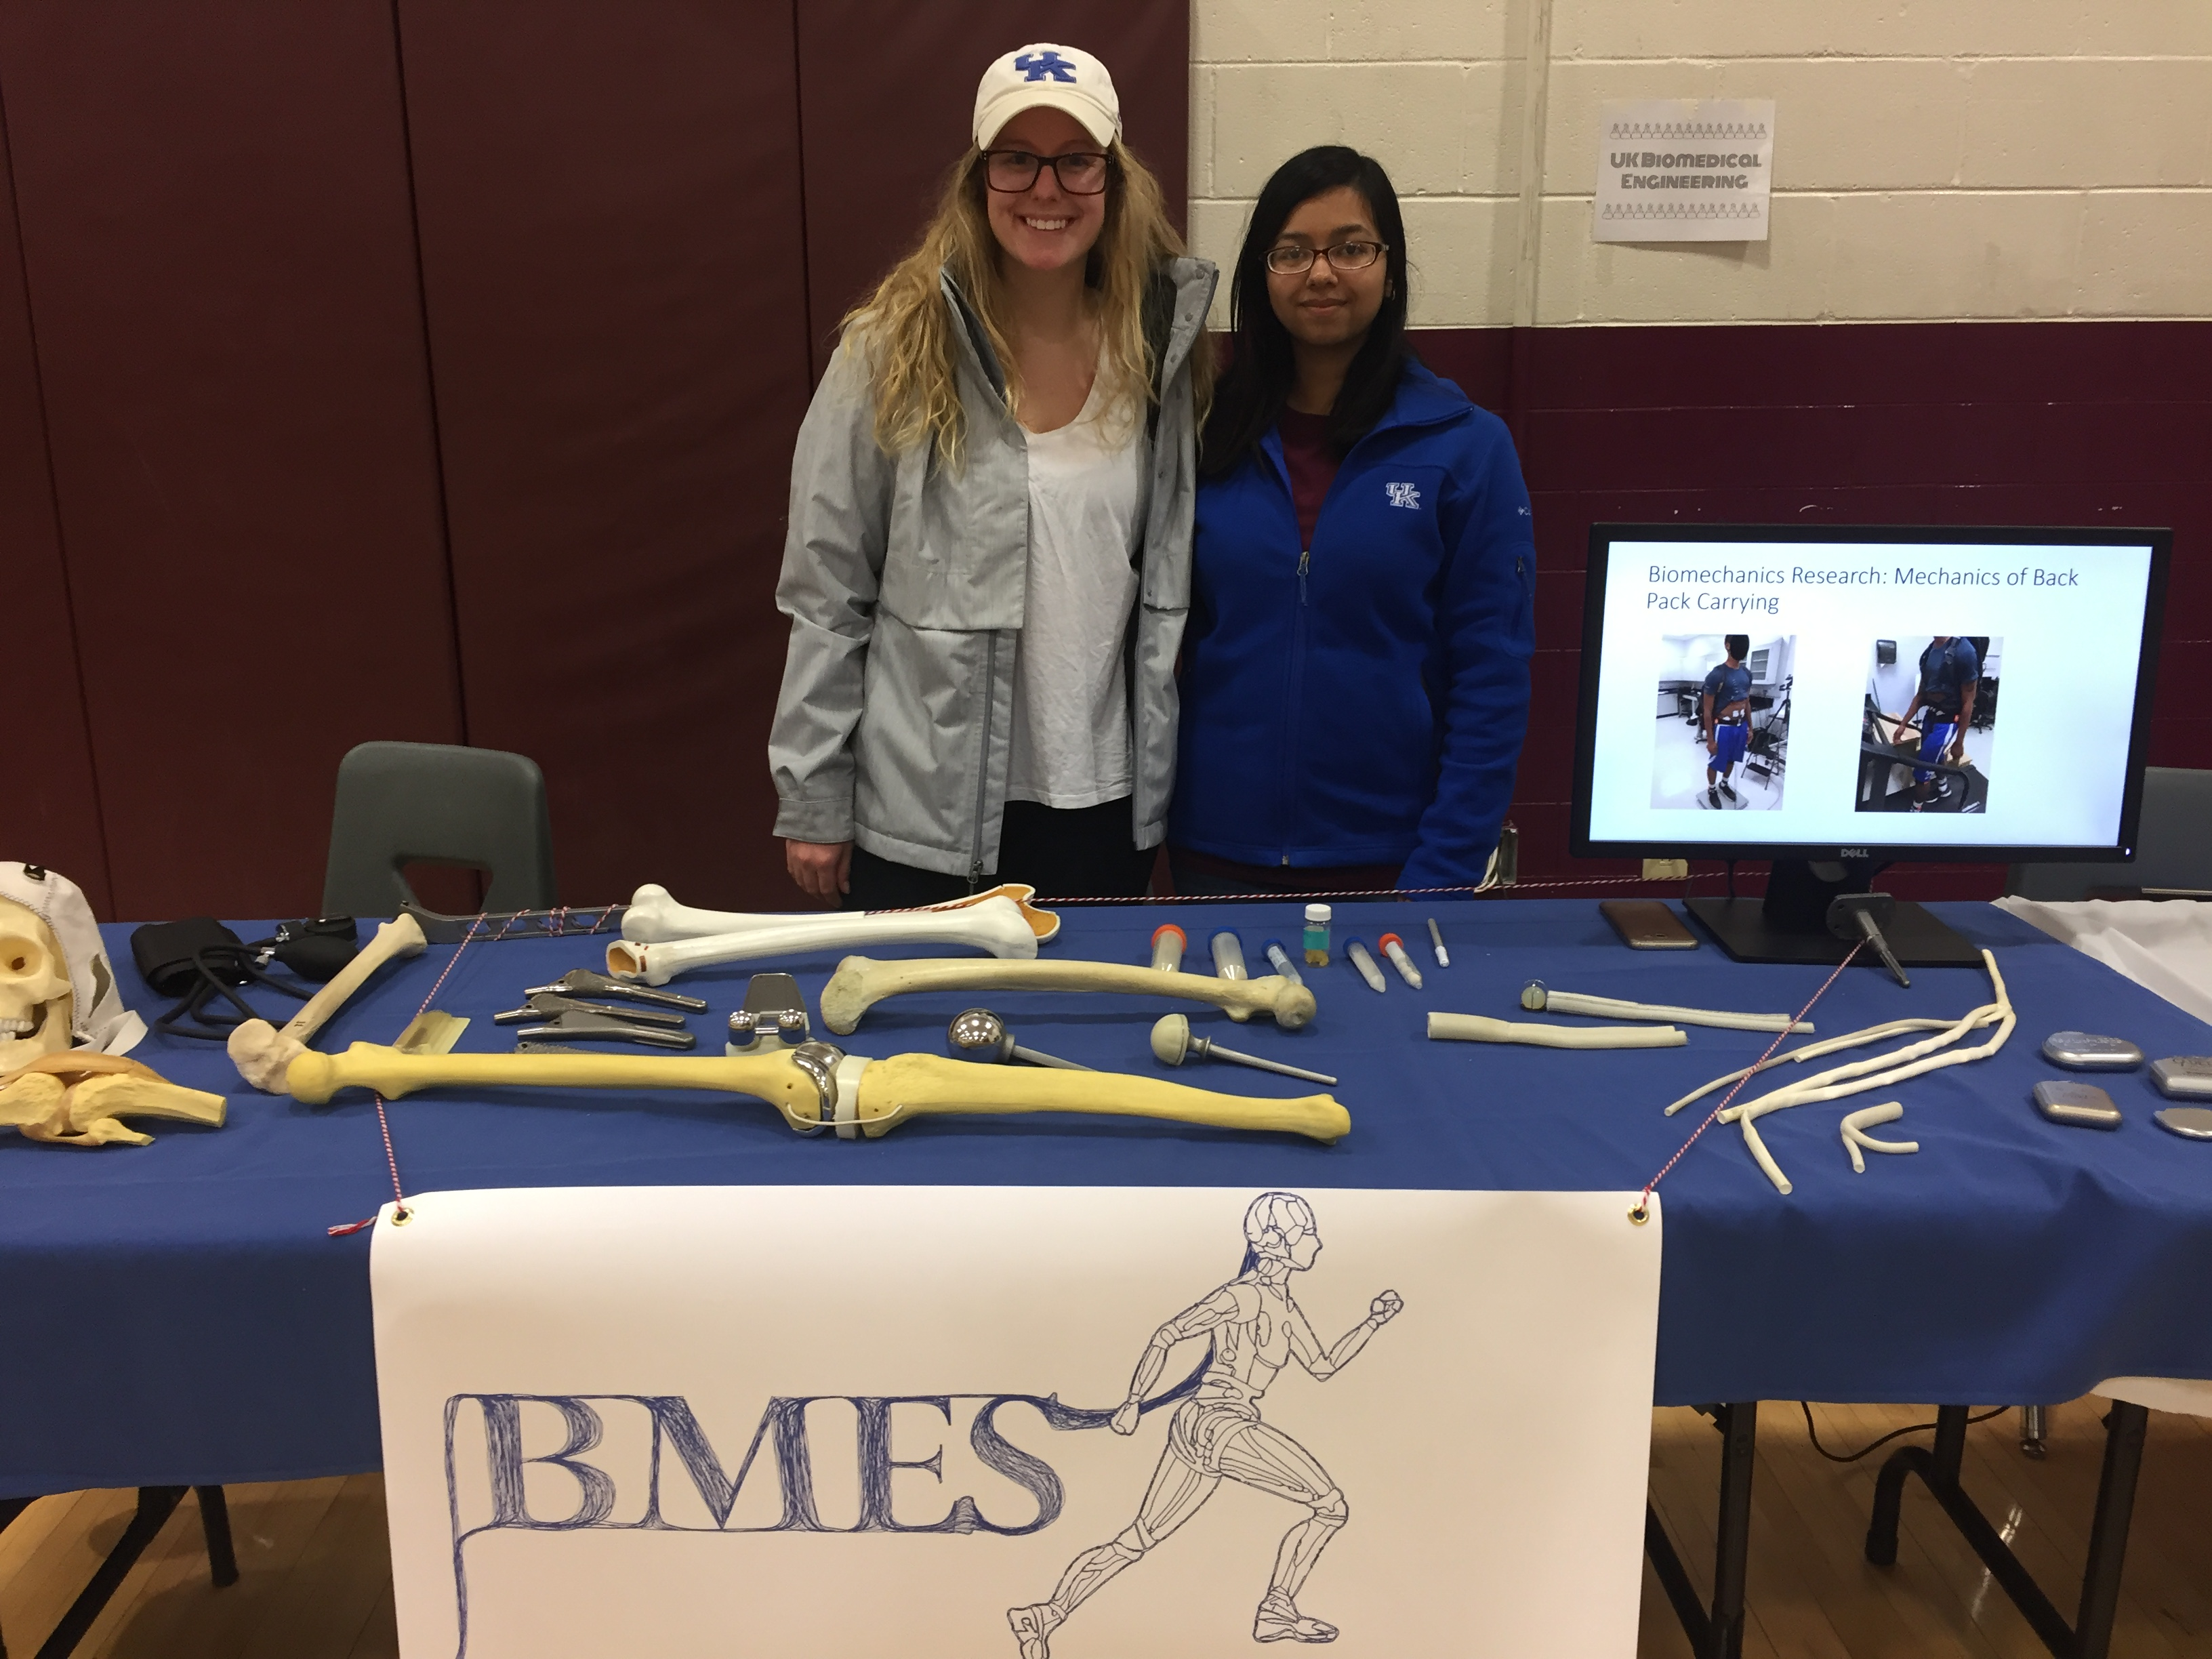 Lucy Niemeyer (left) and Tasneem Naheyan (right) behind the UK BMES Science Night booth at Leestown Middle School.